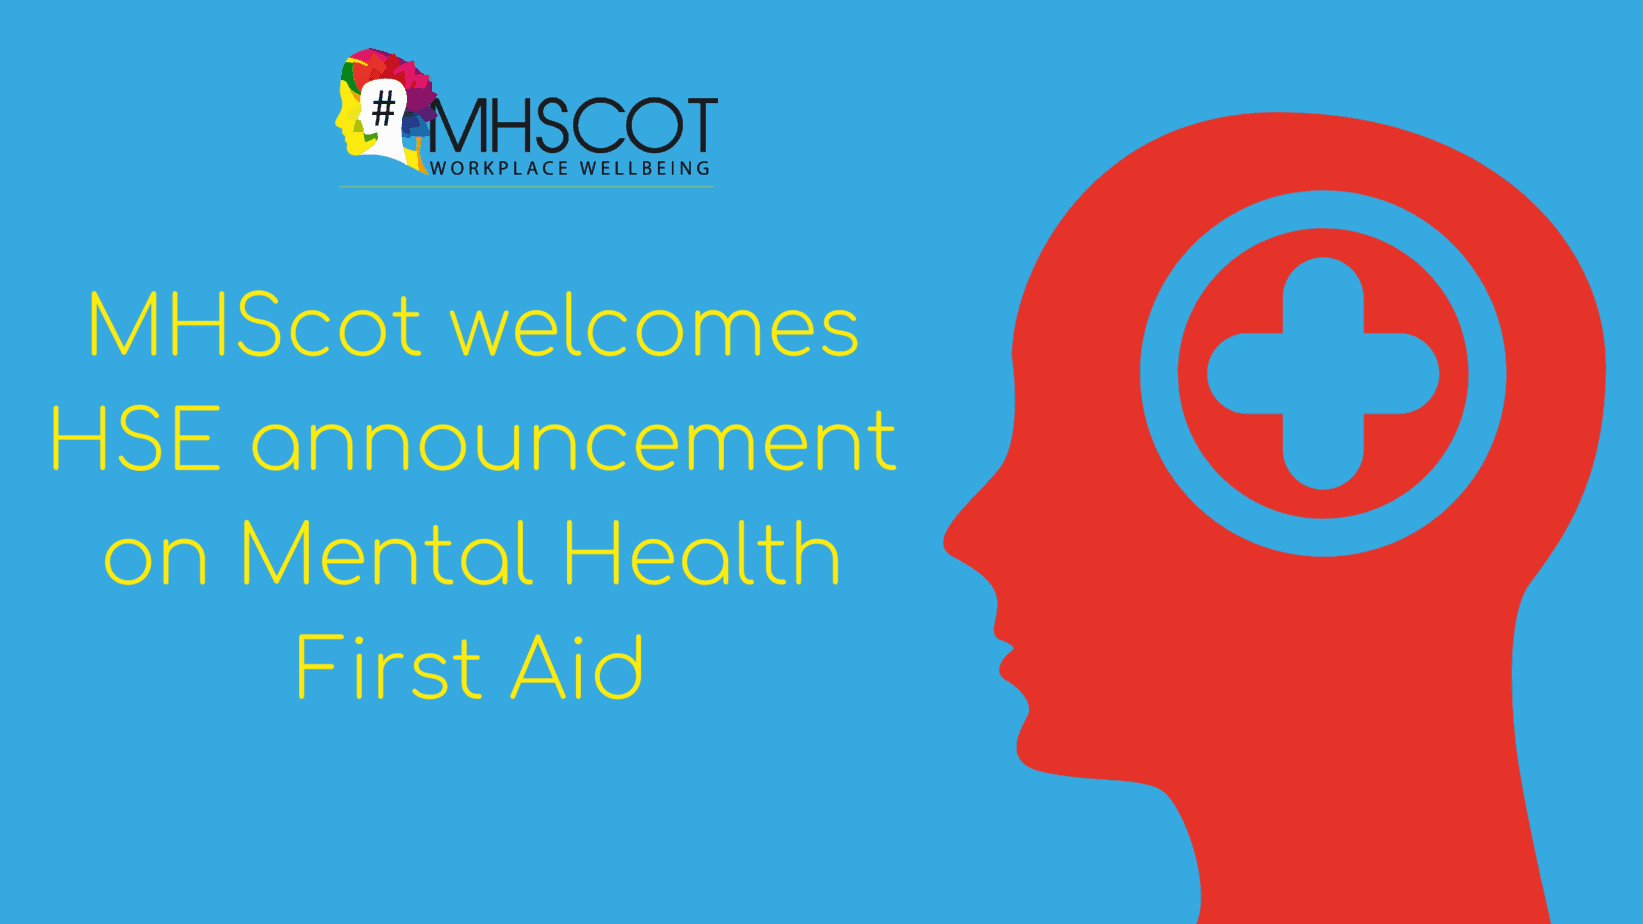 MHScot welcomes HSE announcement on Mental Health First Aid (1)